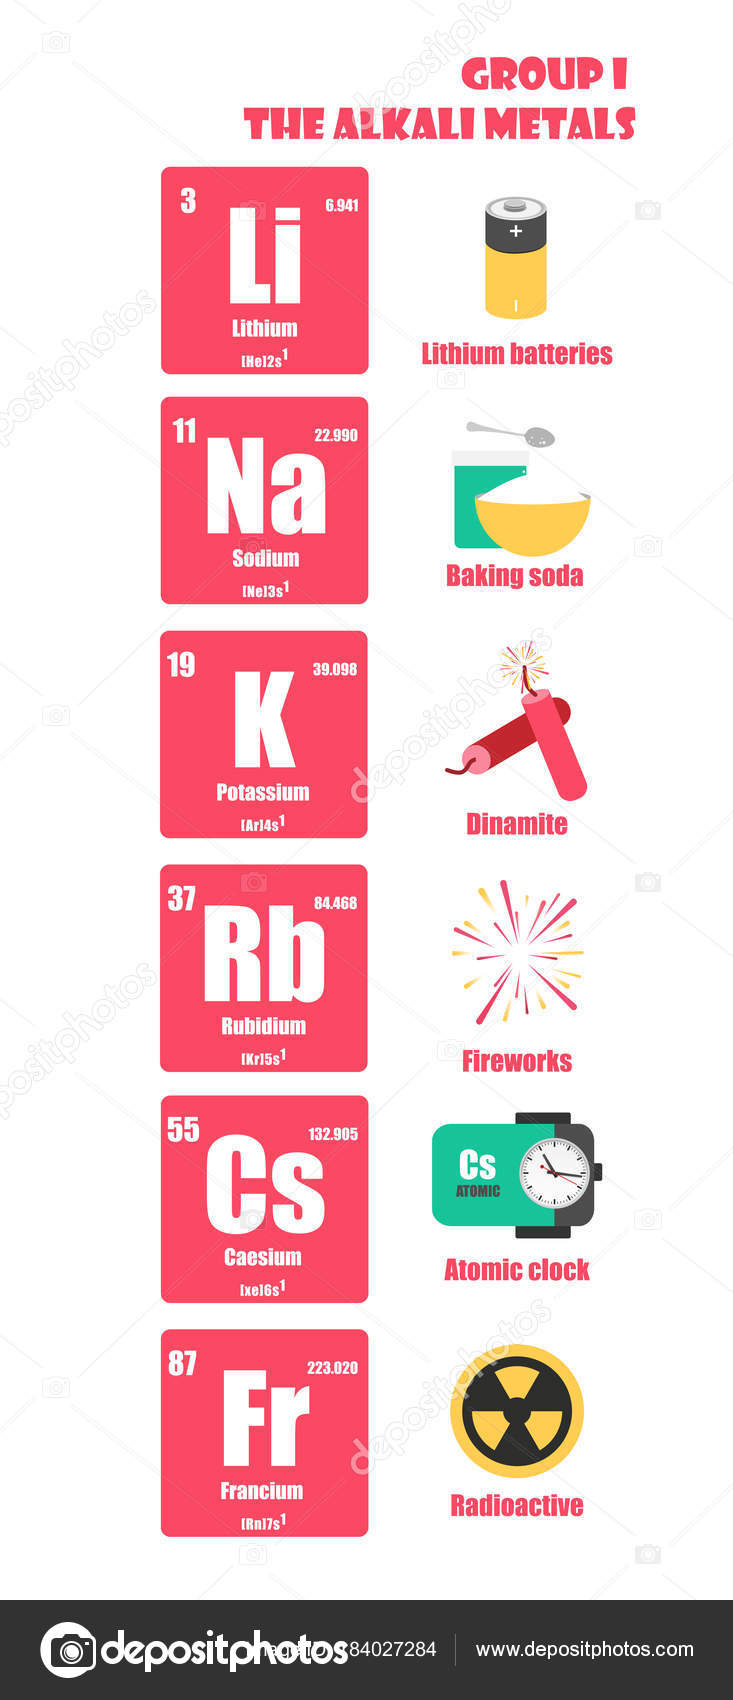 Periodic table of element group i the alkali metals stock vector periodic table of element group i the alkali metals stock vector urtaz